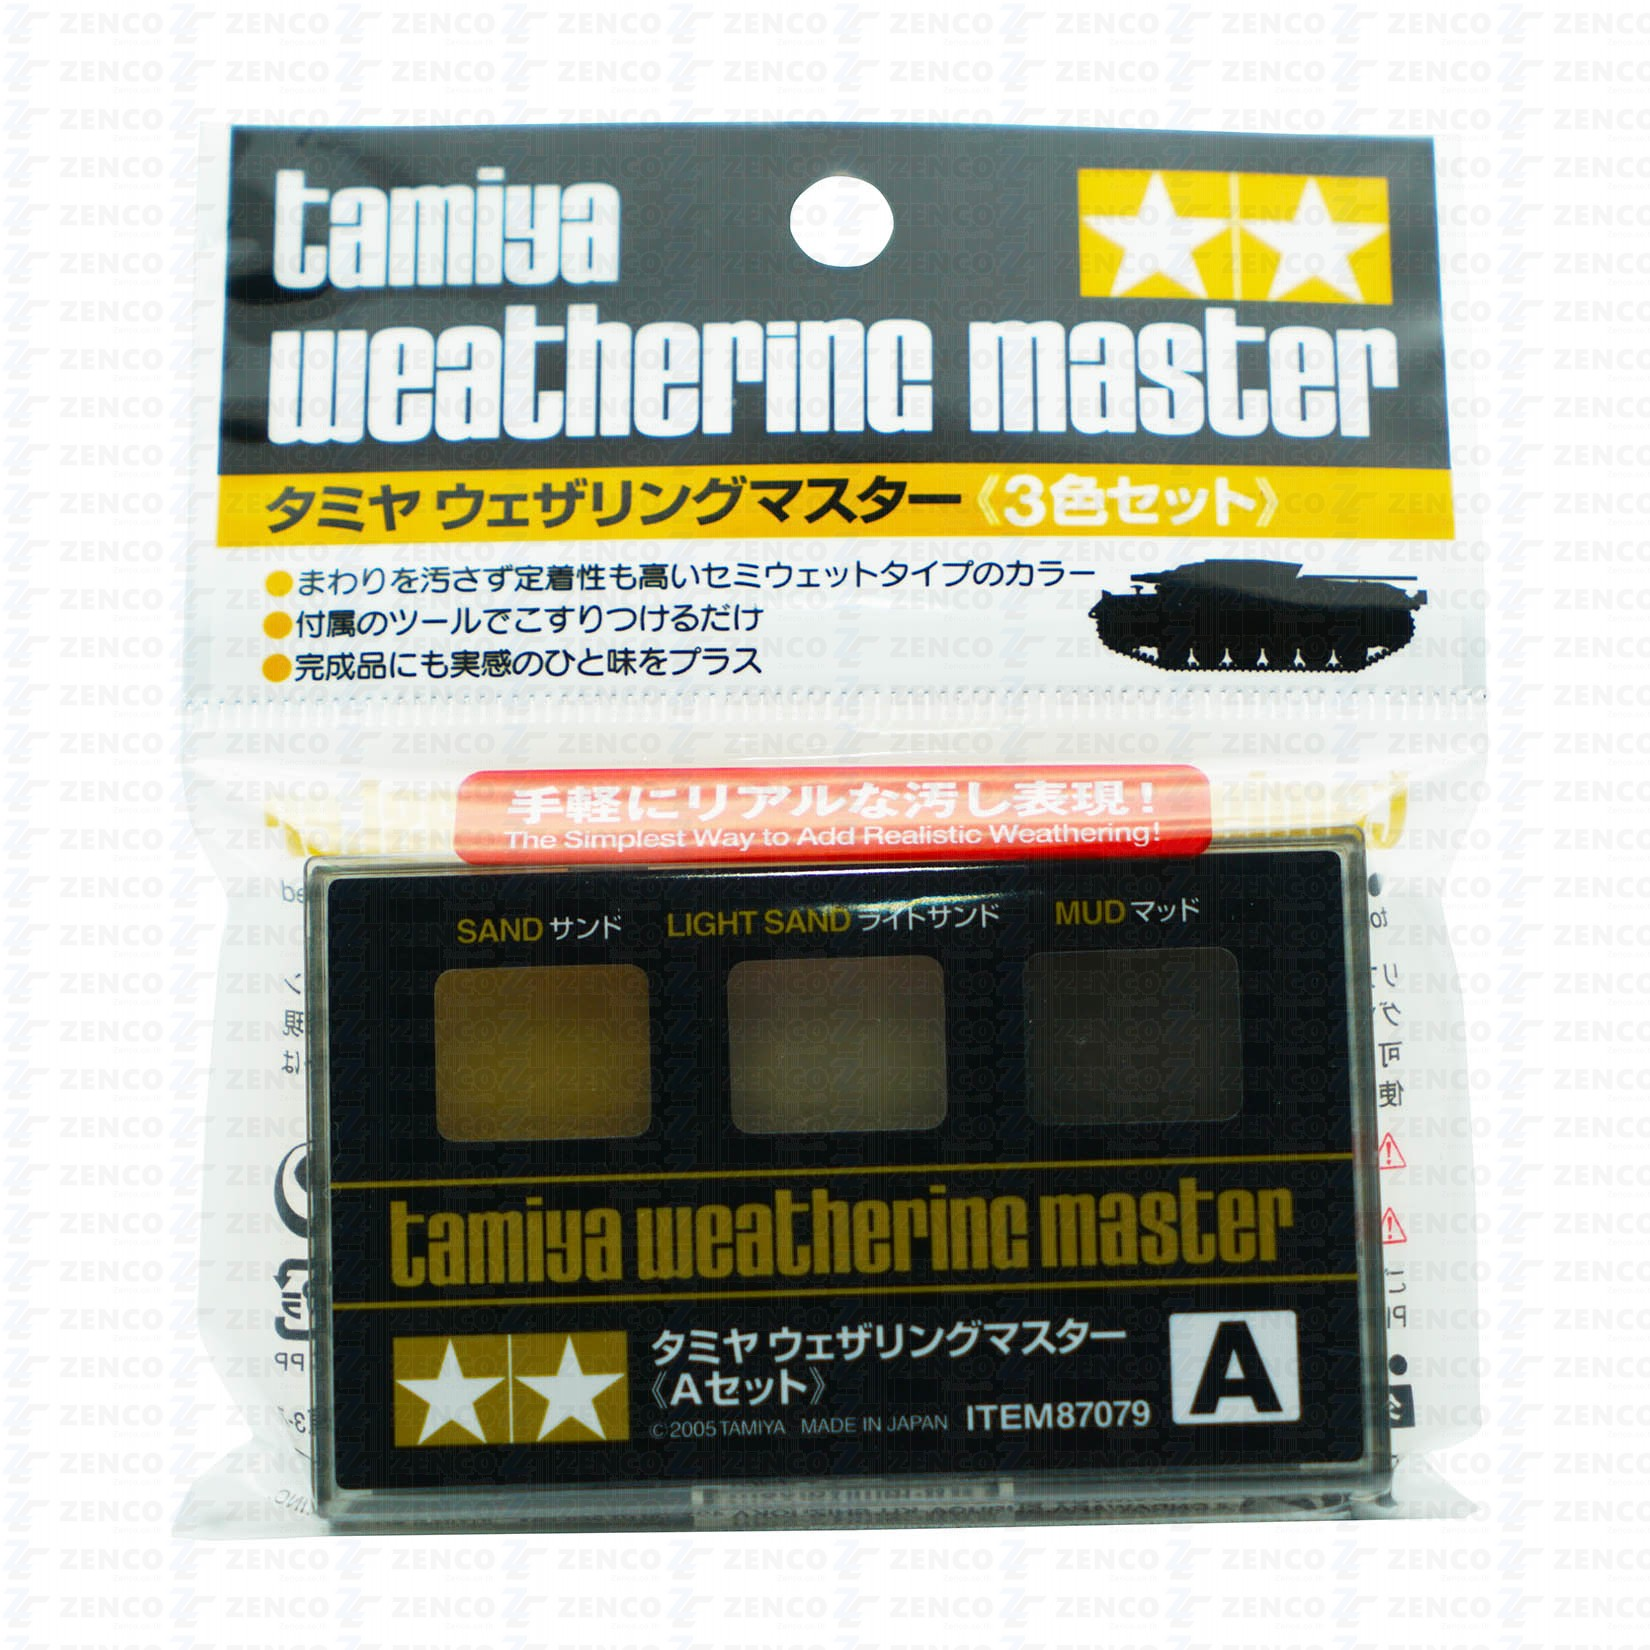 Weathering master A set Sand / Light sand /Mud